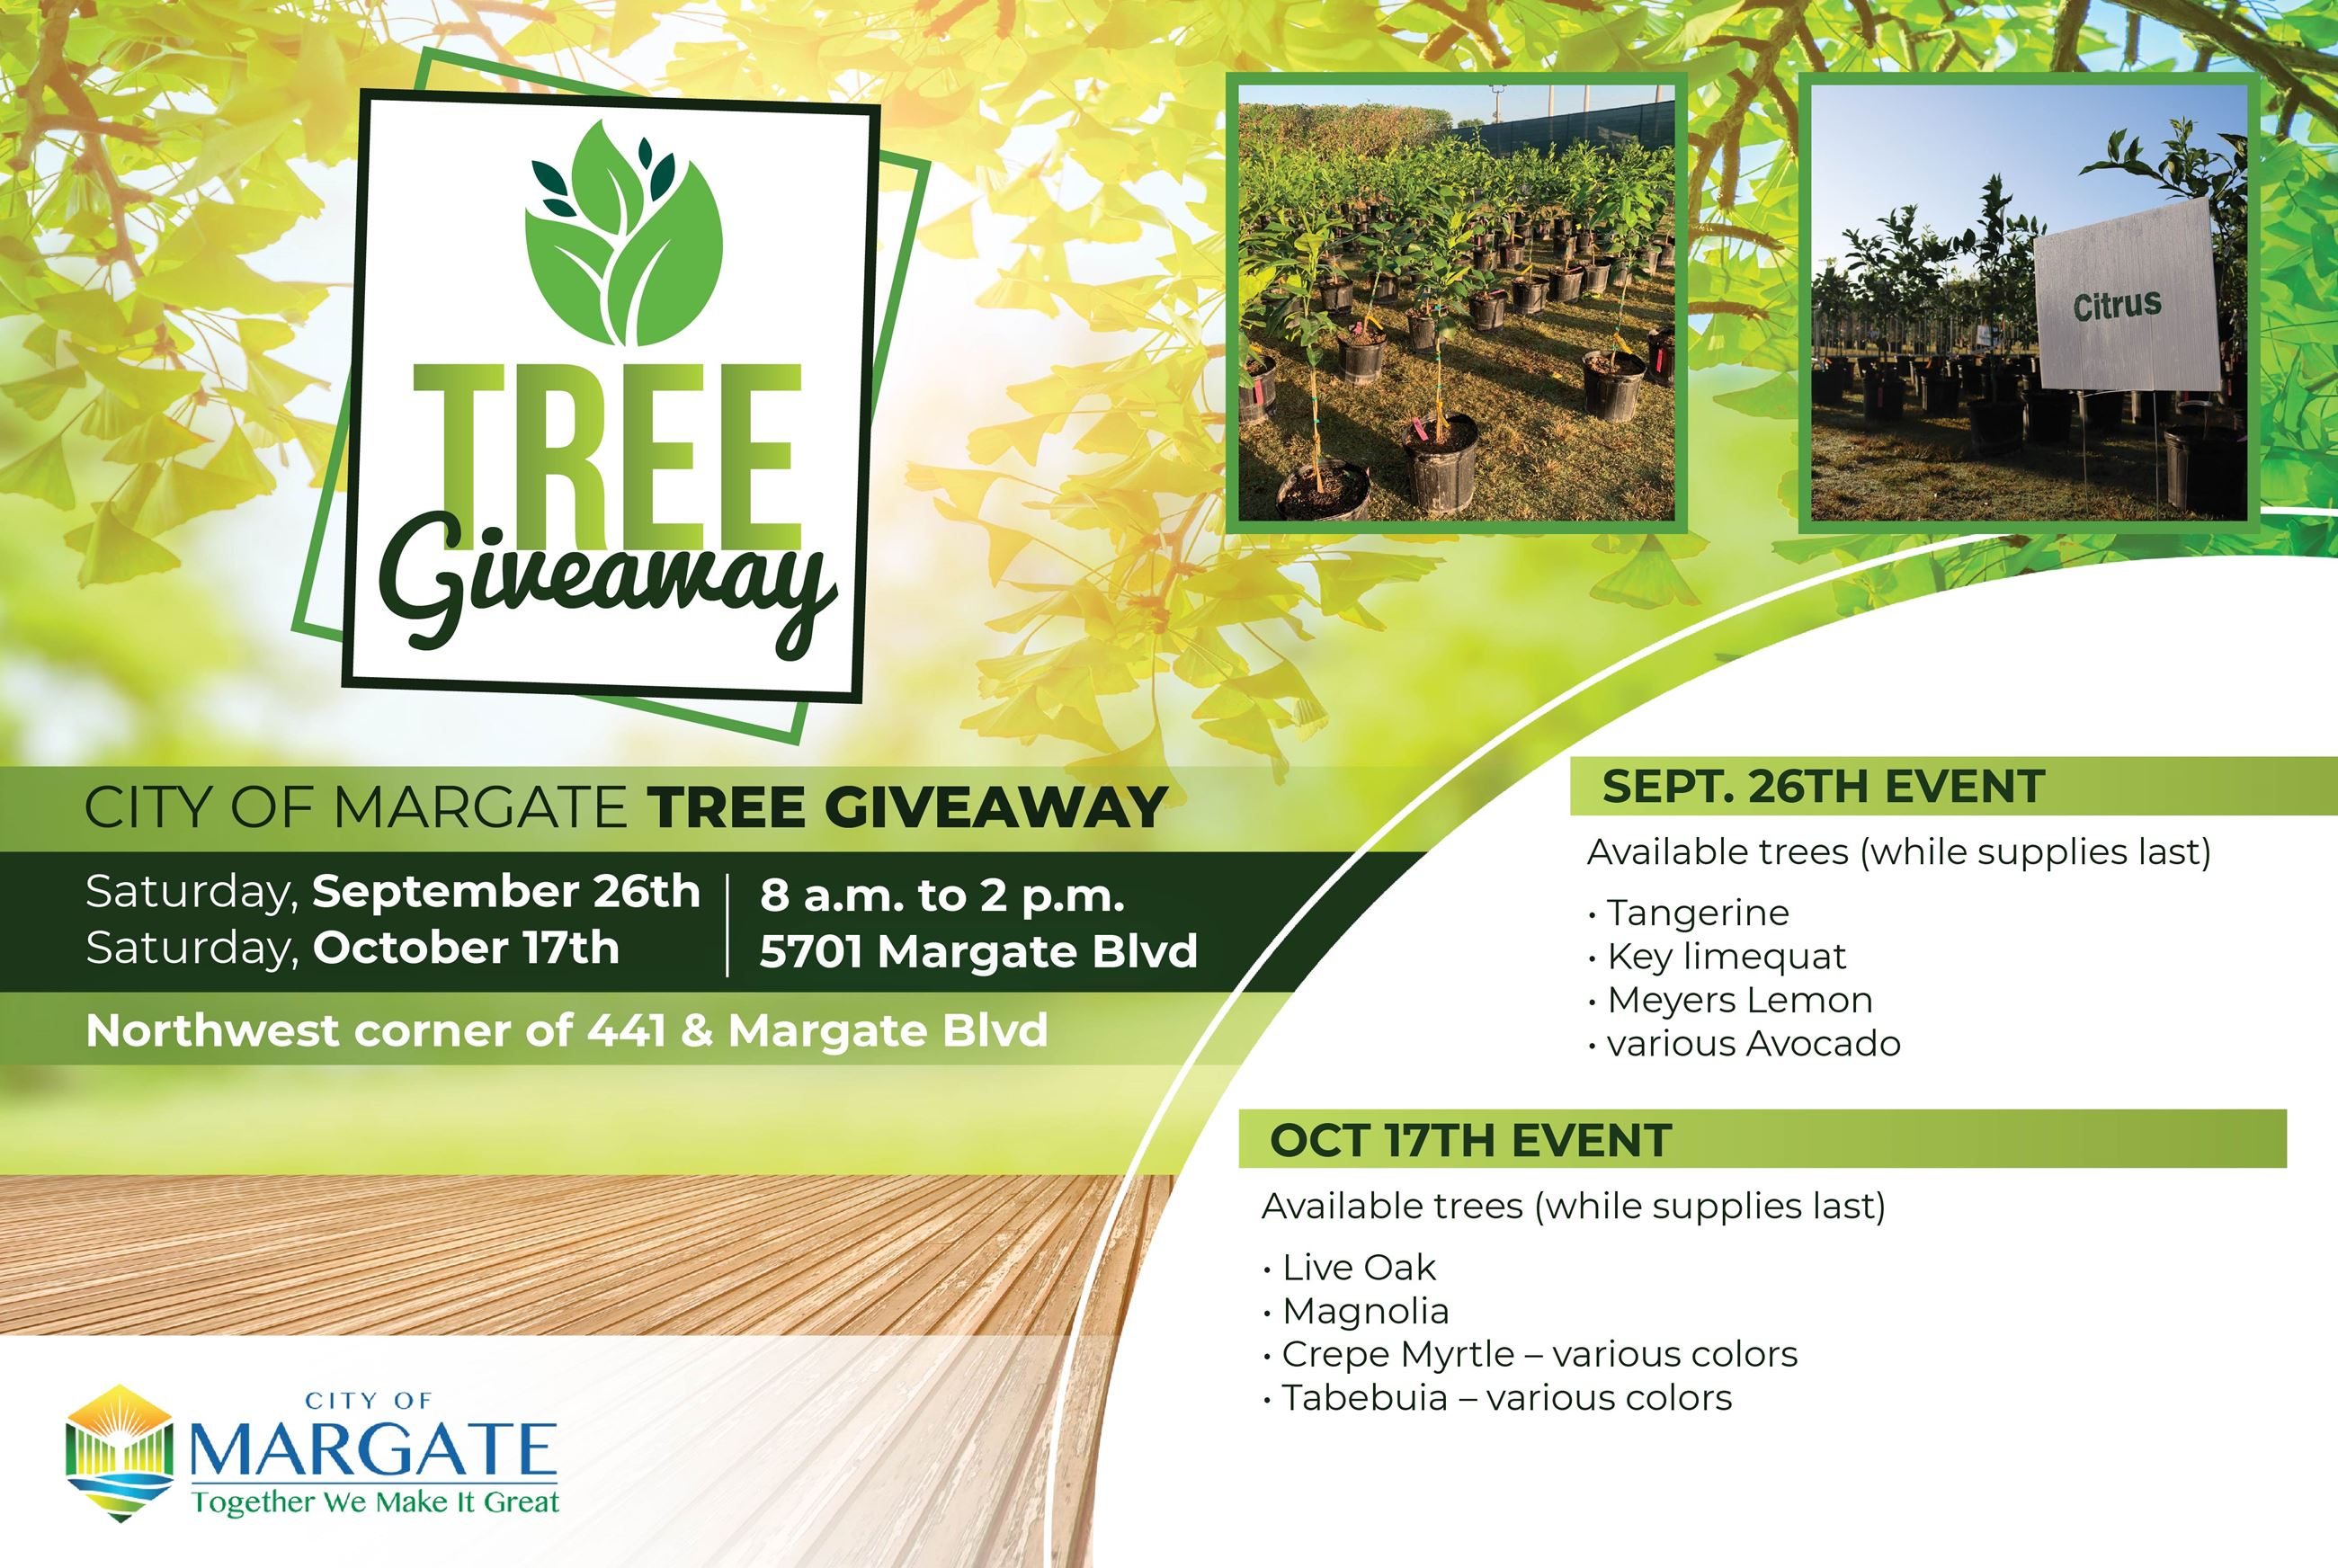 Tree giveaway 2020